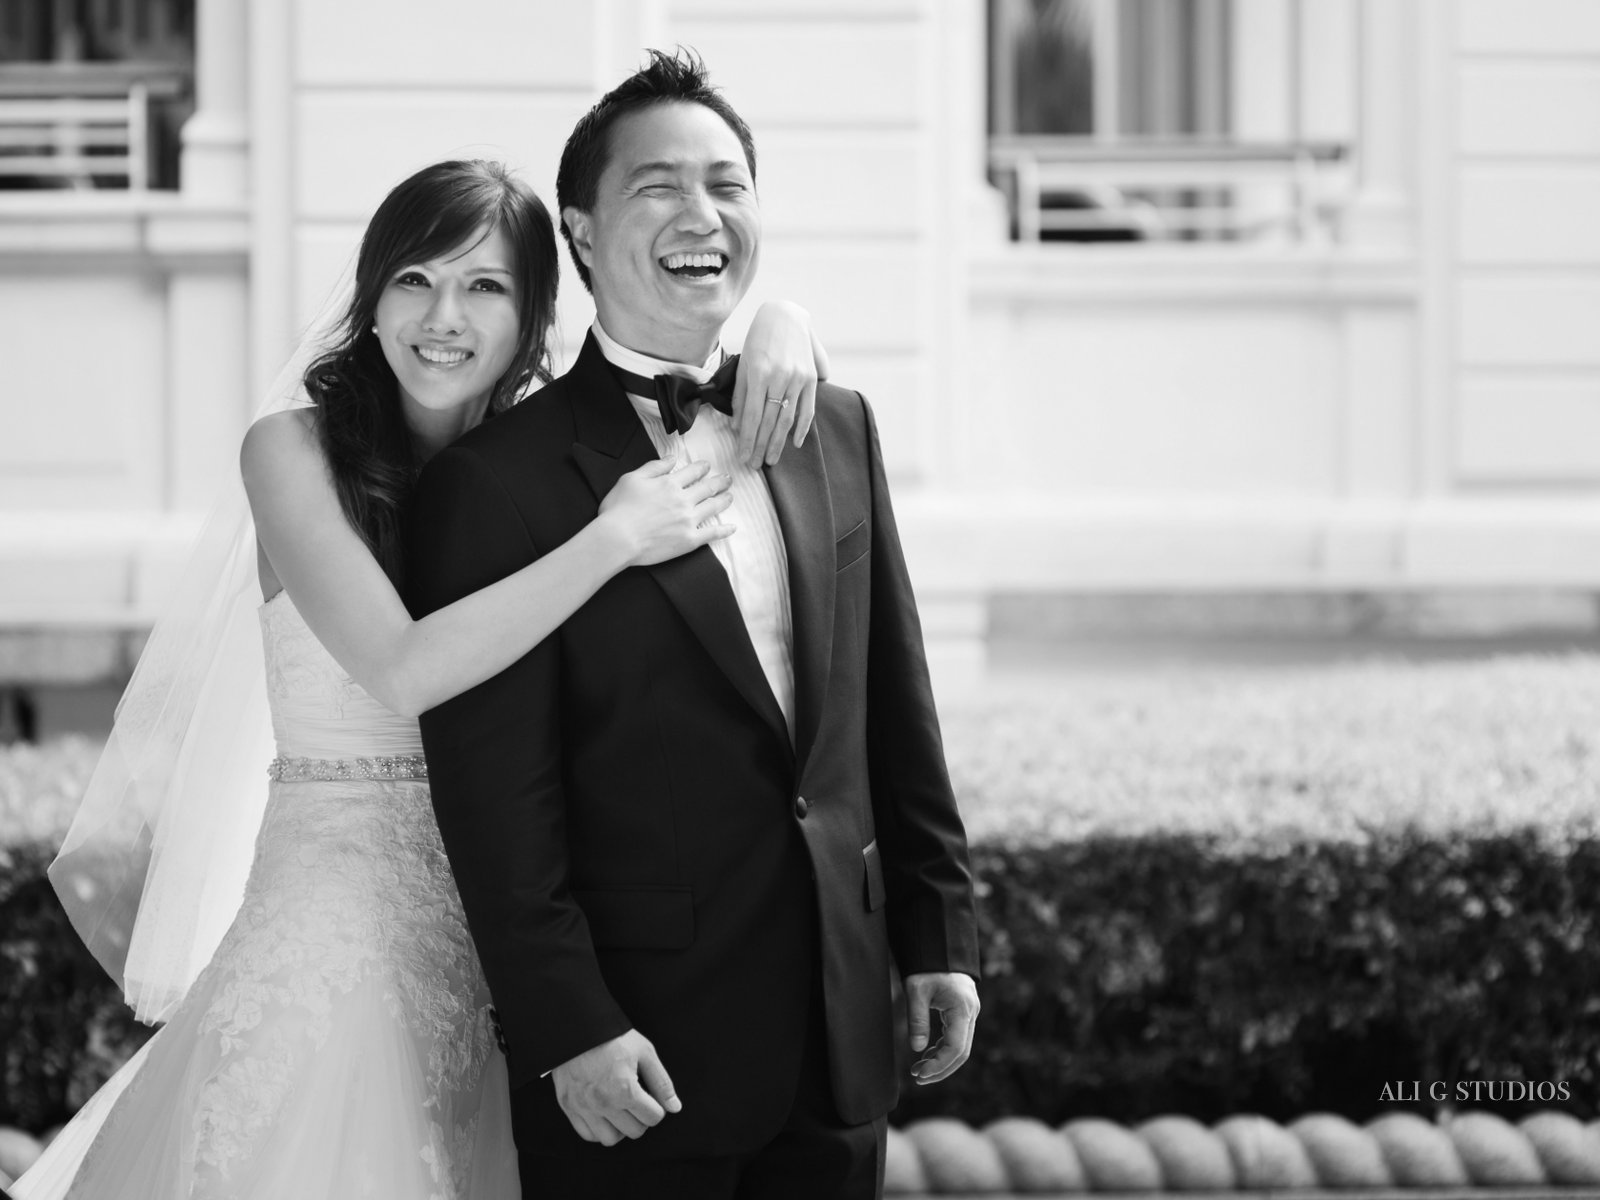 6 reasons why black and white photos make your wedding album pop